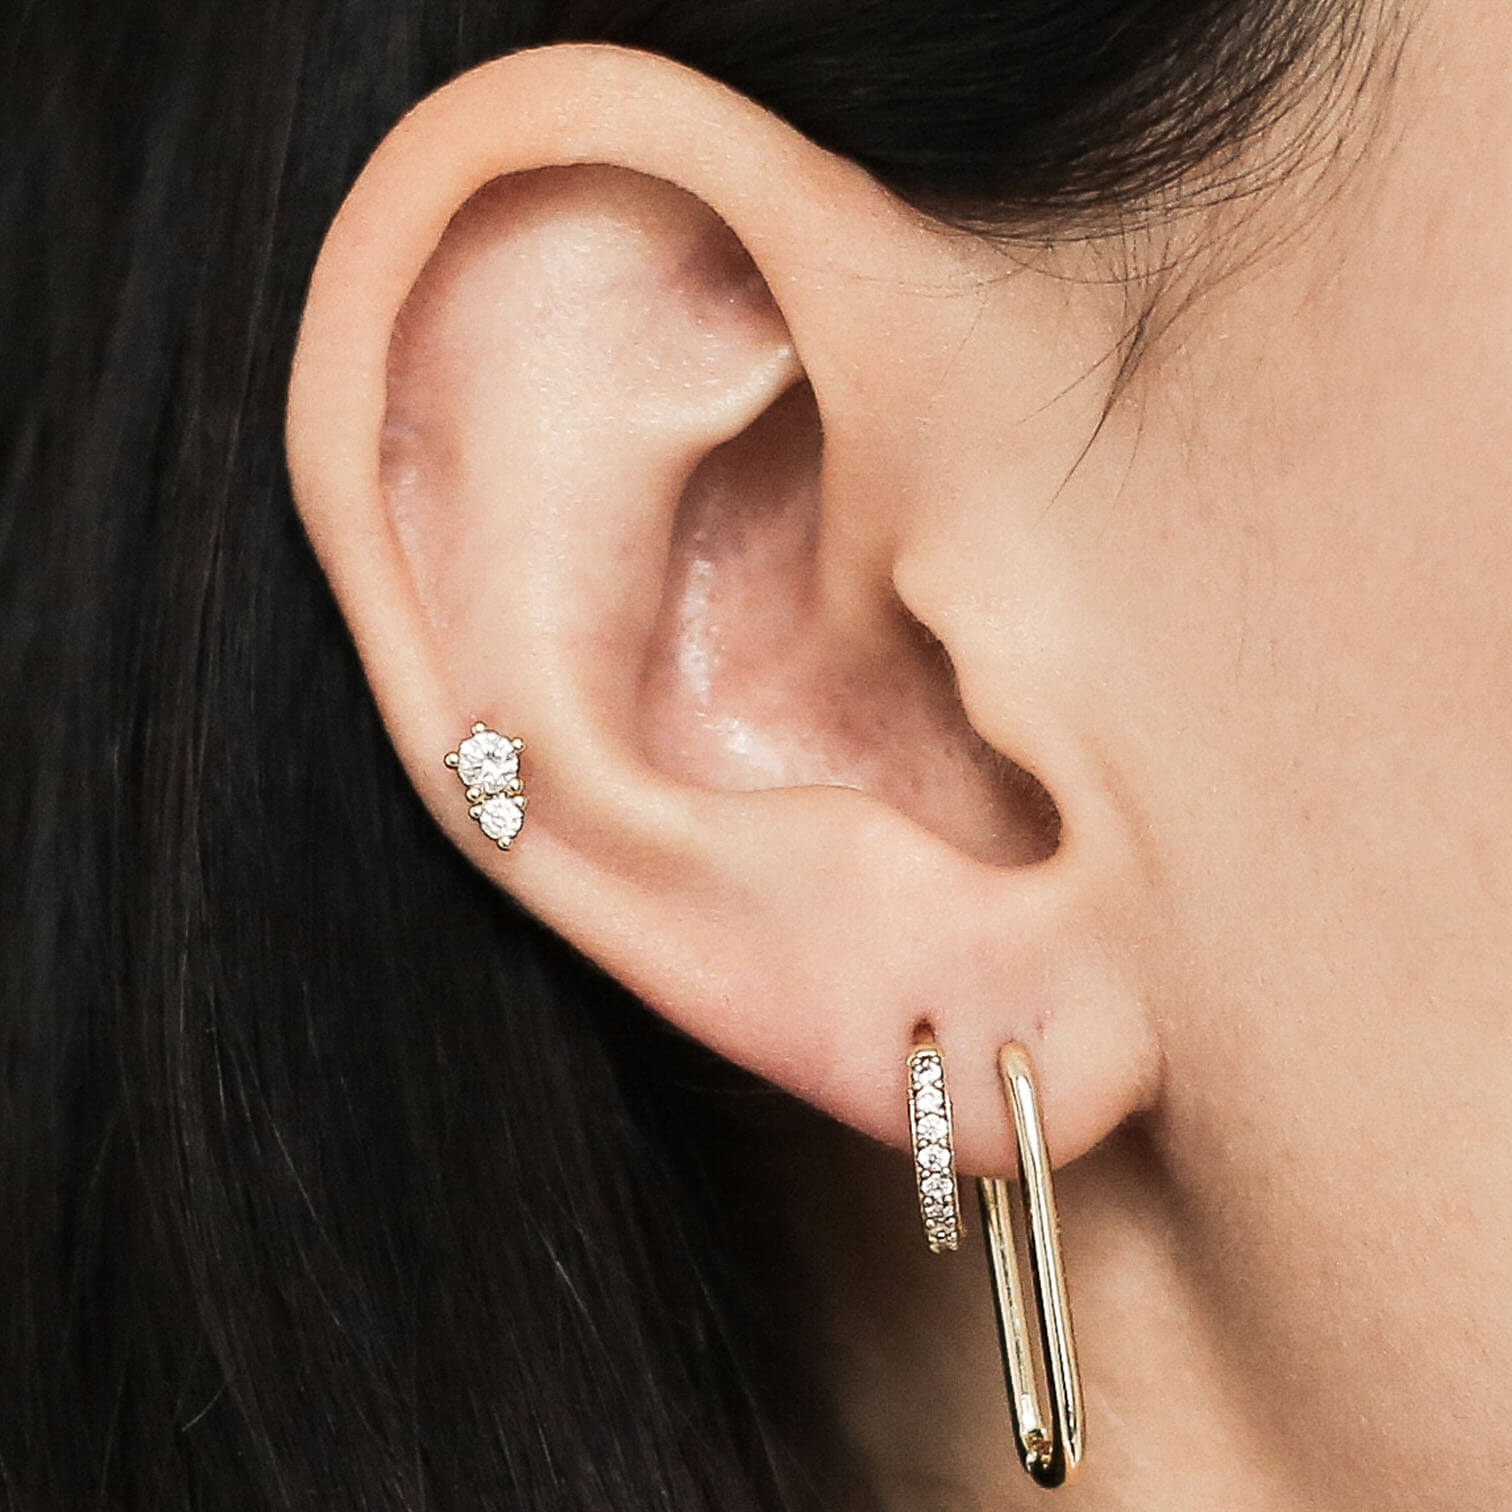 Gaia Push Pin Flat Back Earring in Gold on model